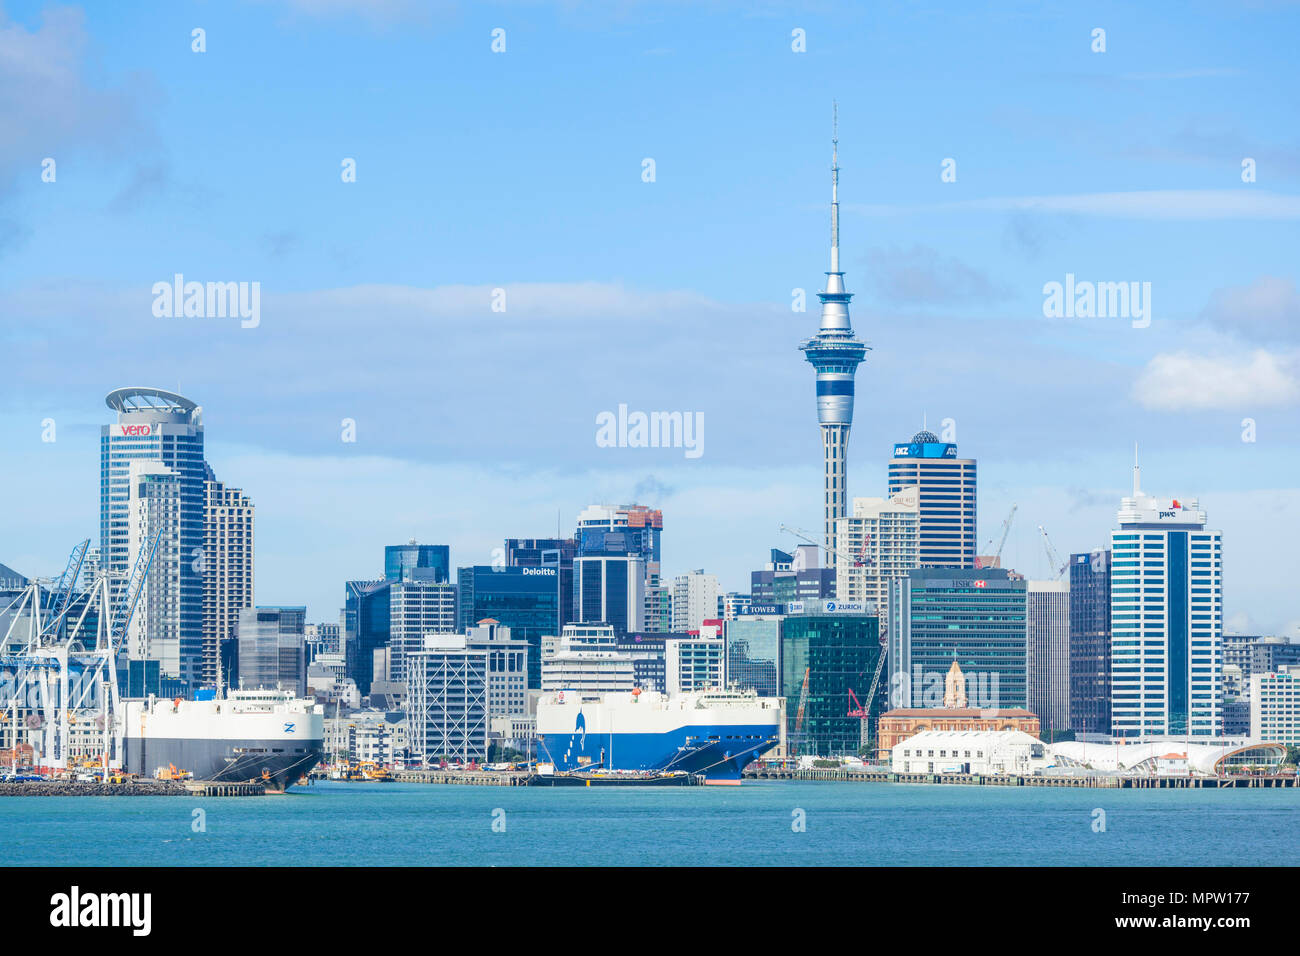 new zealand auckland new zealand north island auckland skyline Waitemata Harbour cbd sky tower and wharf area of the waterfront auckland nz Stock Photo